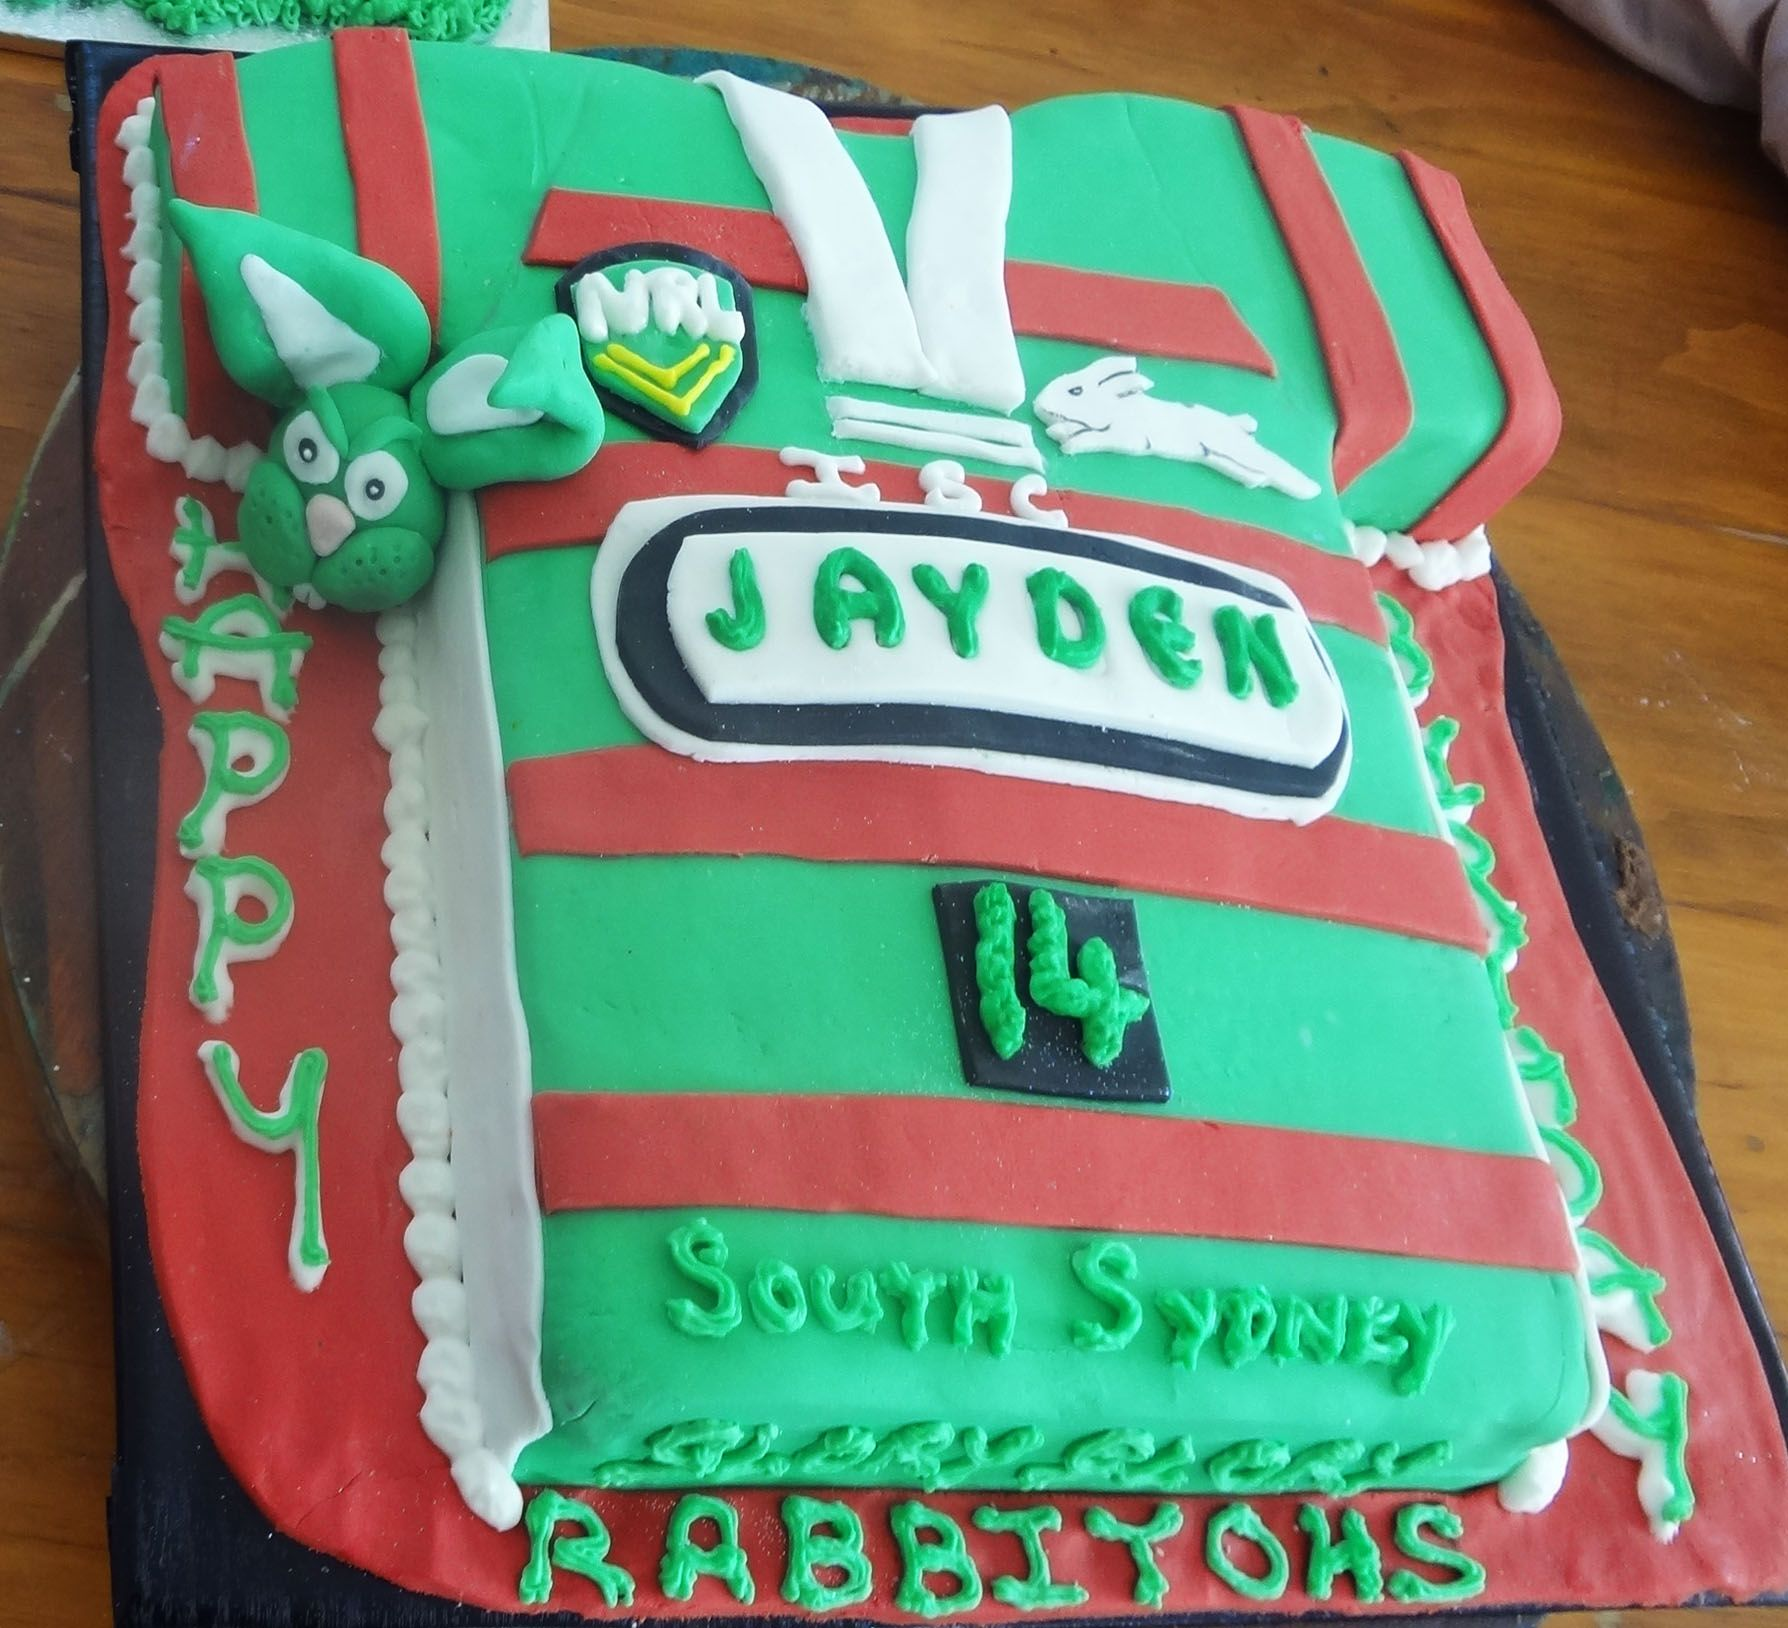 South Sydney Rabbitoh's Shirt Cake By Novy NRL Rugby